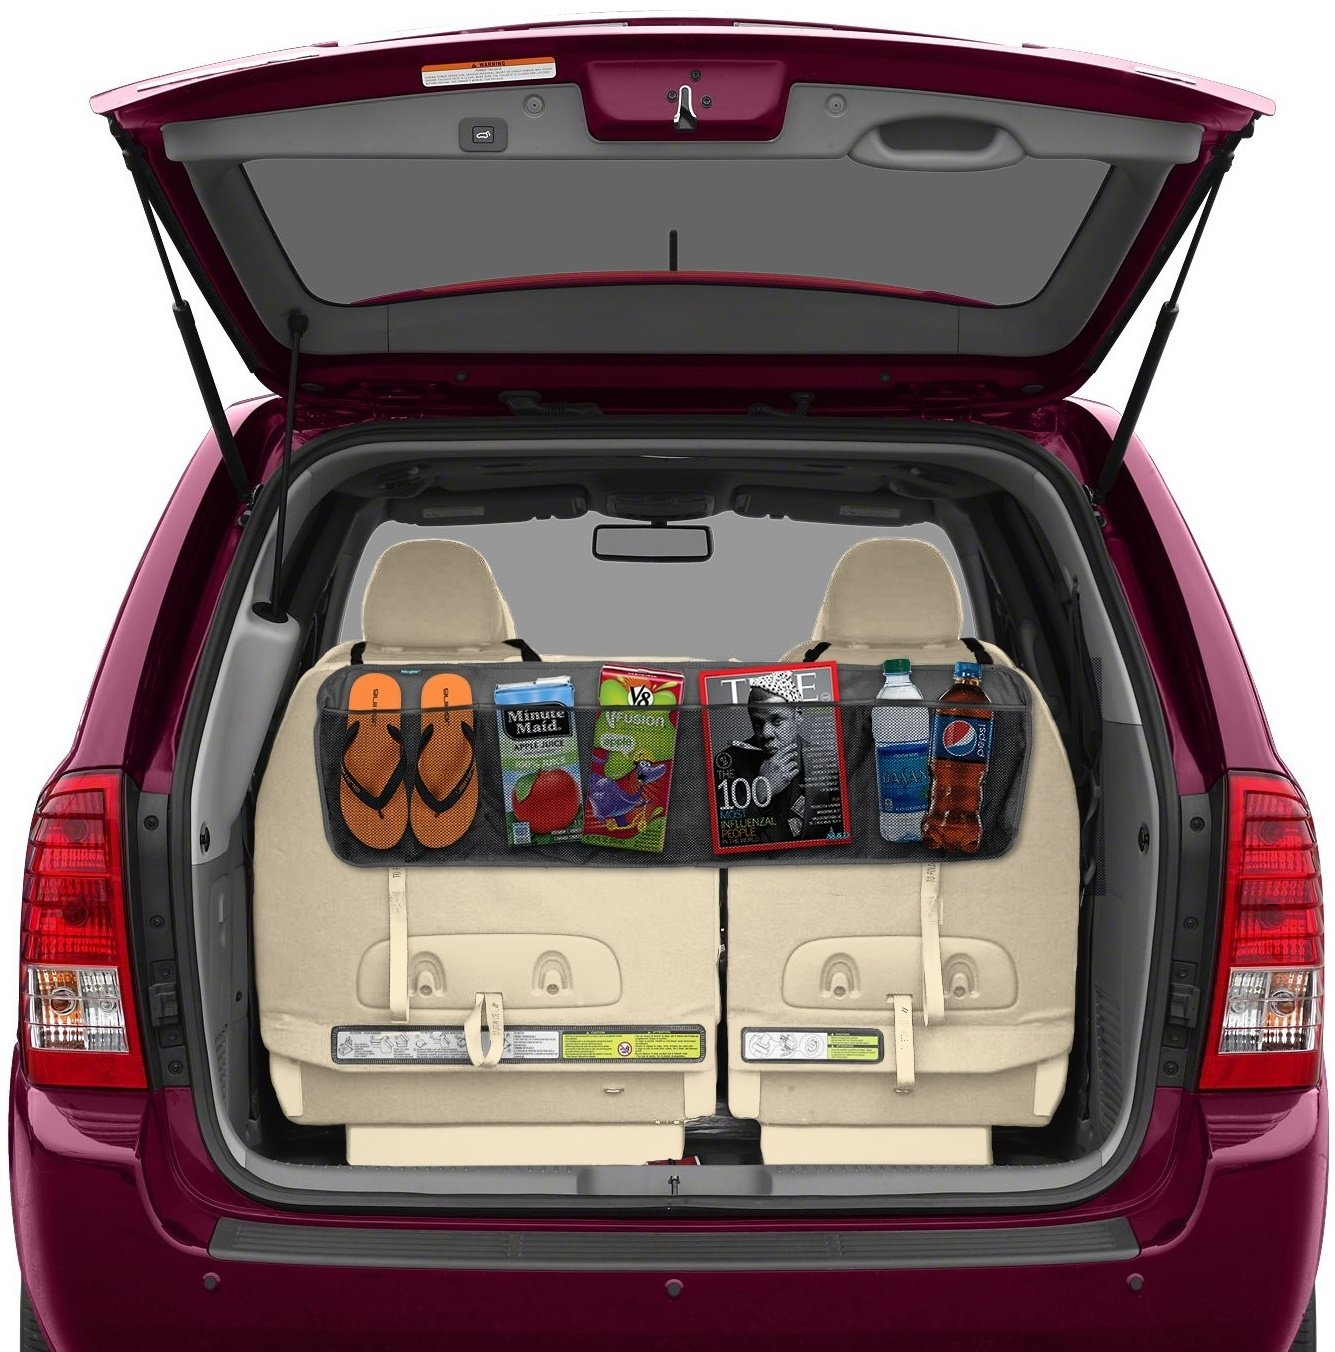 Amazon backseattrunk organizer by lebogner 5 pocket auto amazon backseattrunk organizer by lebogner 5 pocket auto interior perfect car organizer trunk organizer backseat organizer multipurpose cargo solutioingenieria Image collections